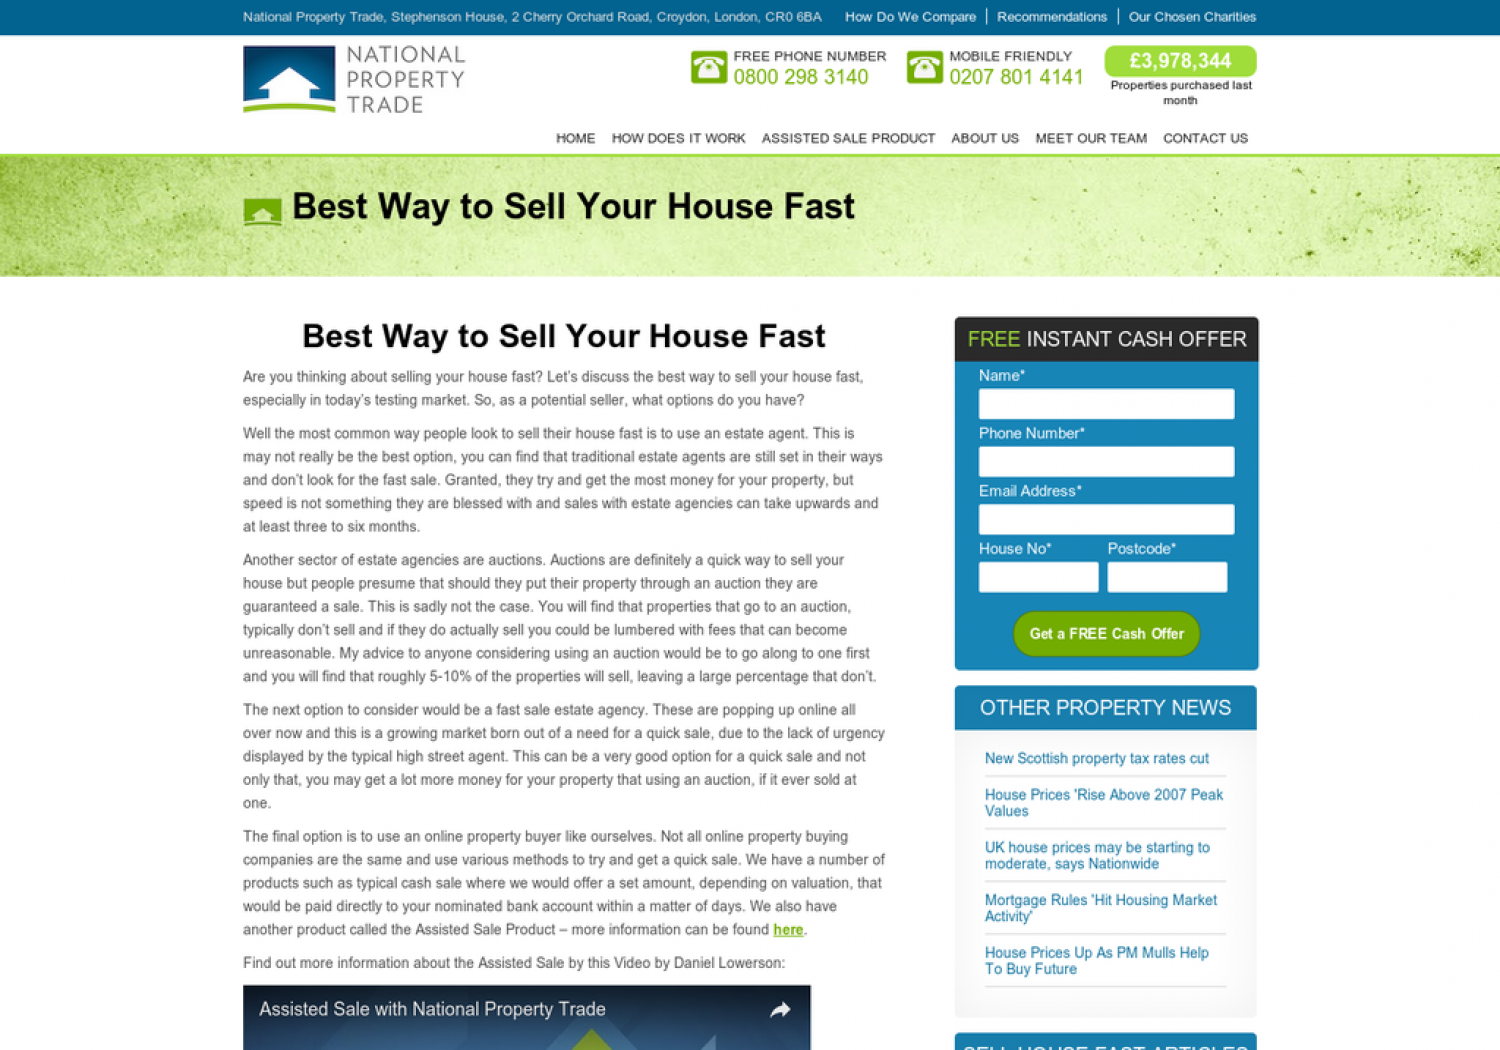 Best Way to Sell Your House Fast Infographic